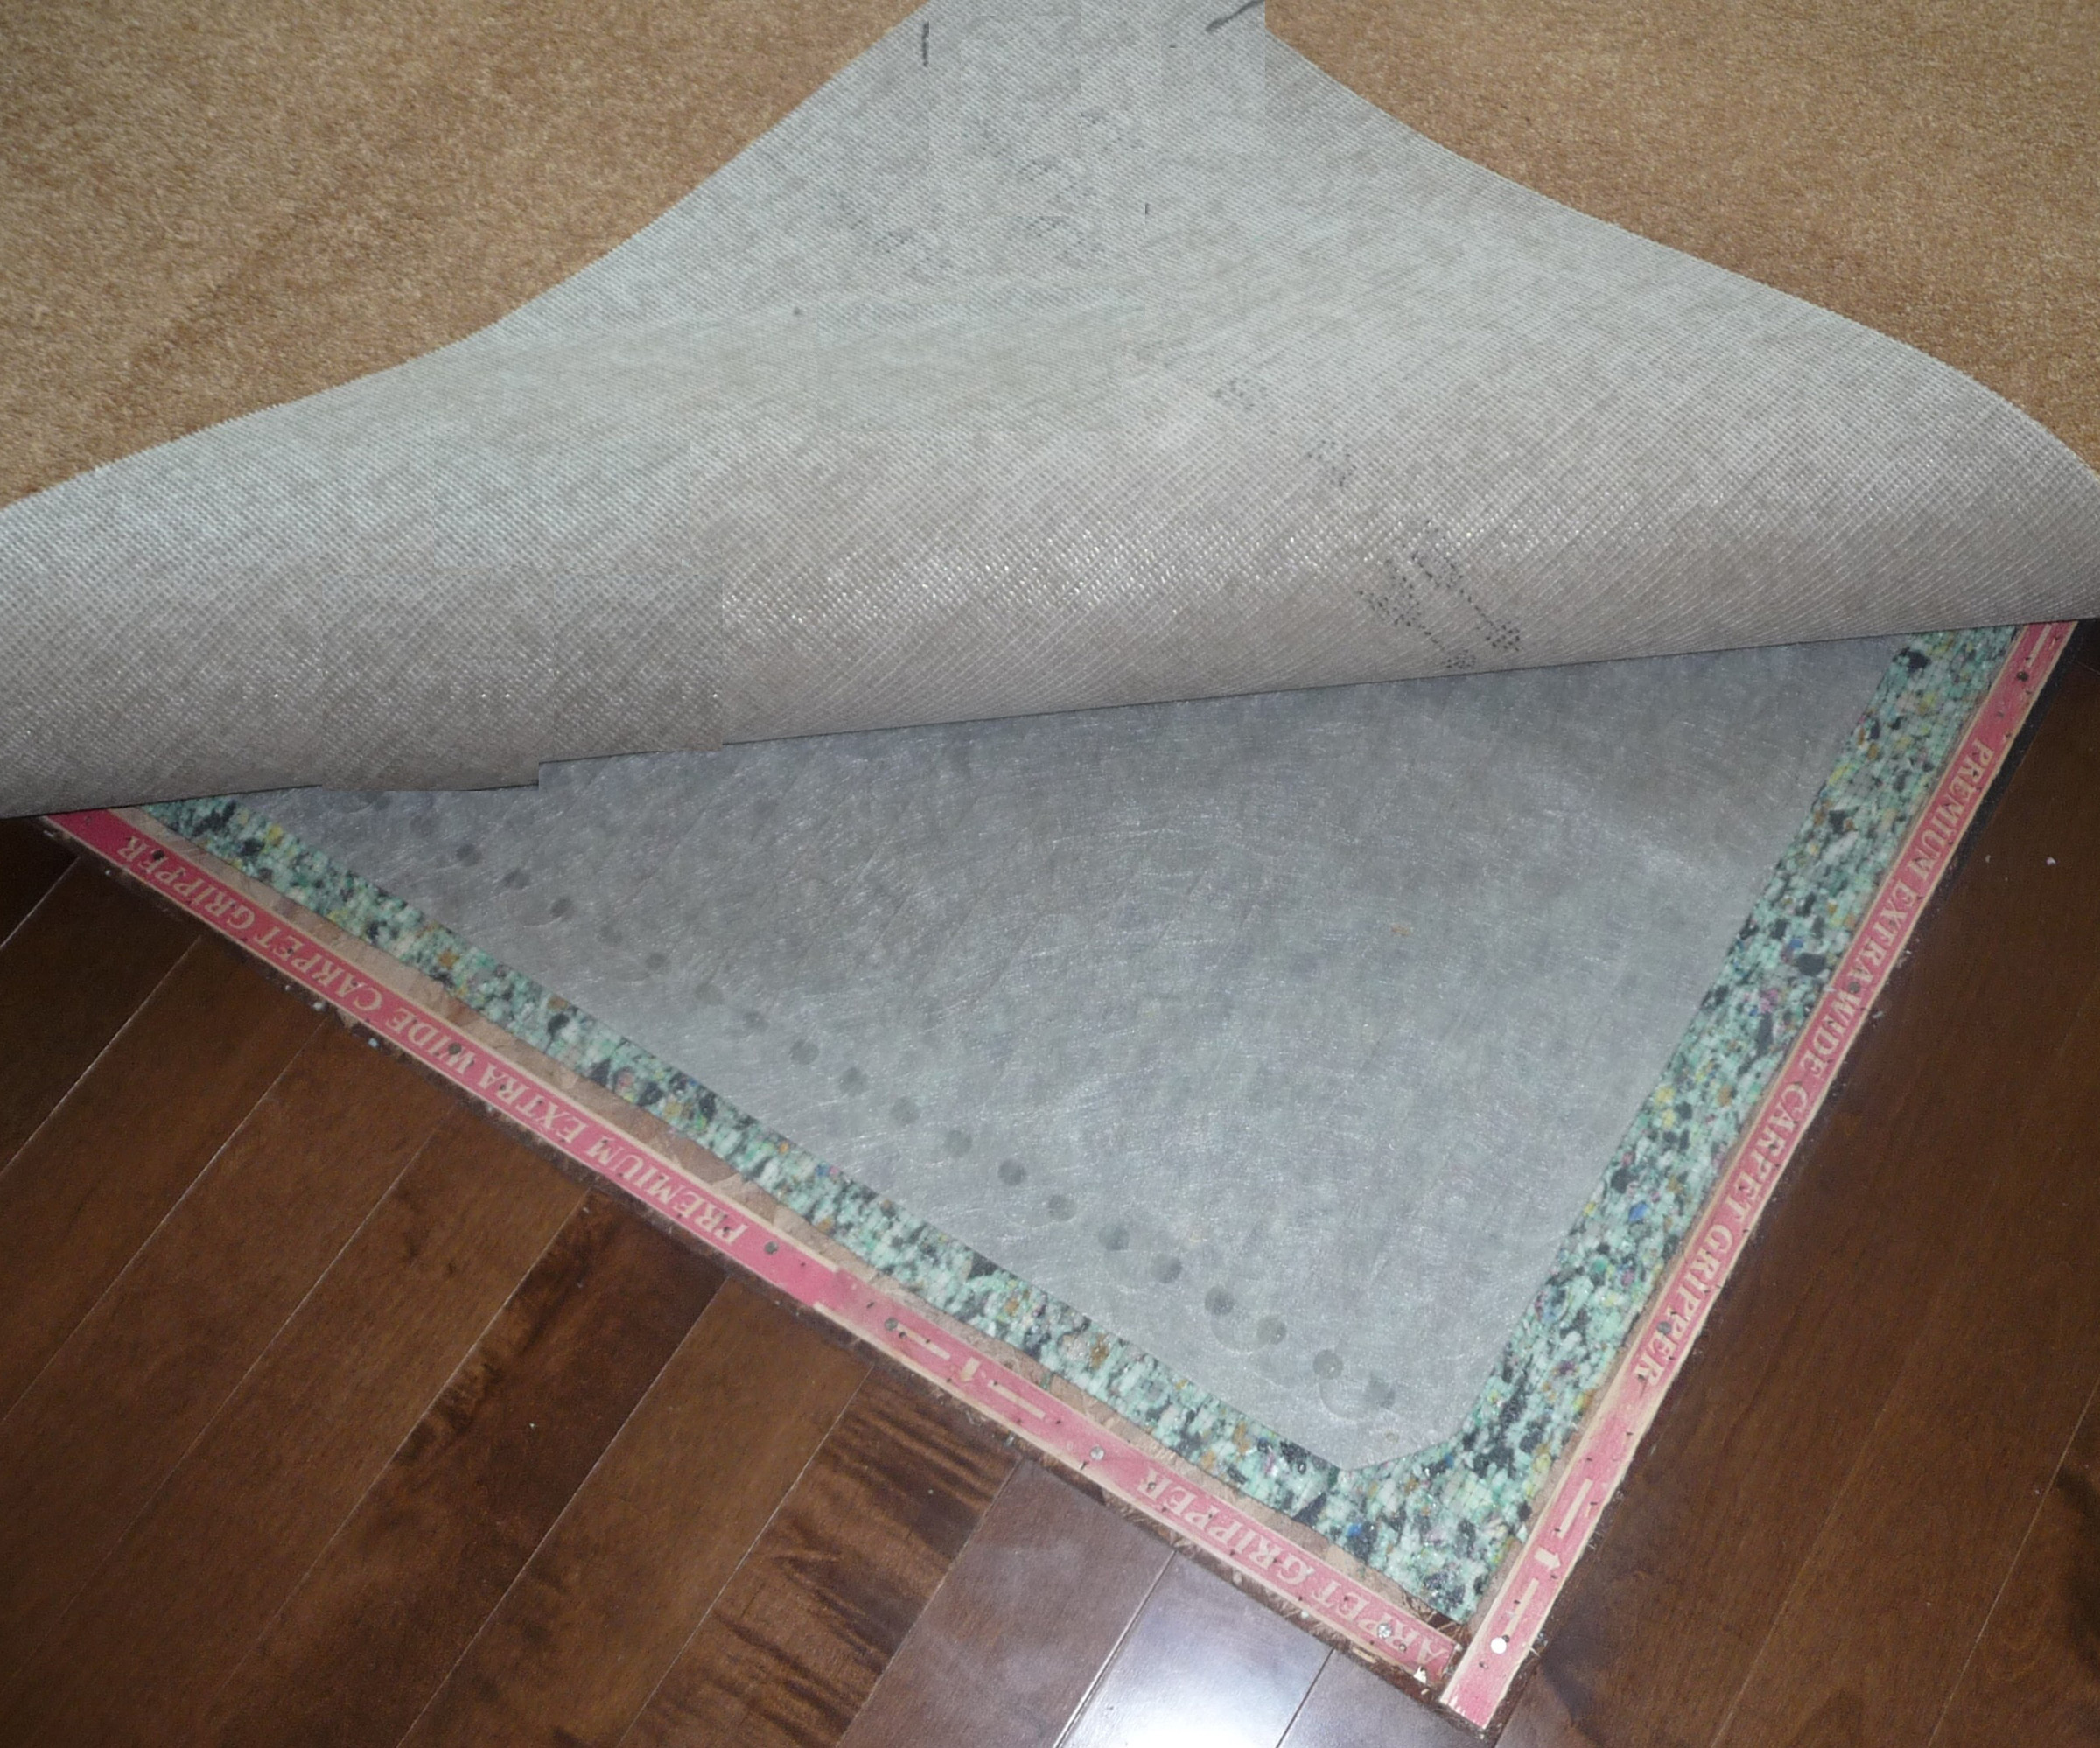 Heated Mats Turn Your Area Rugs